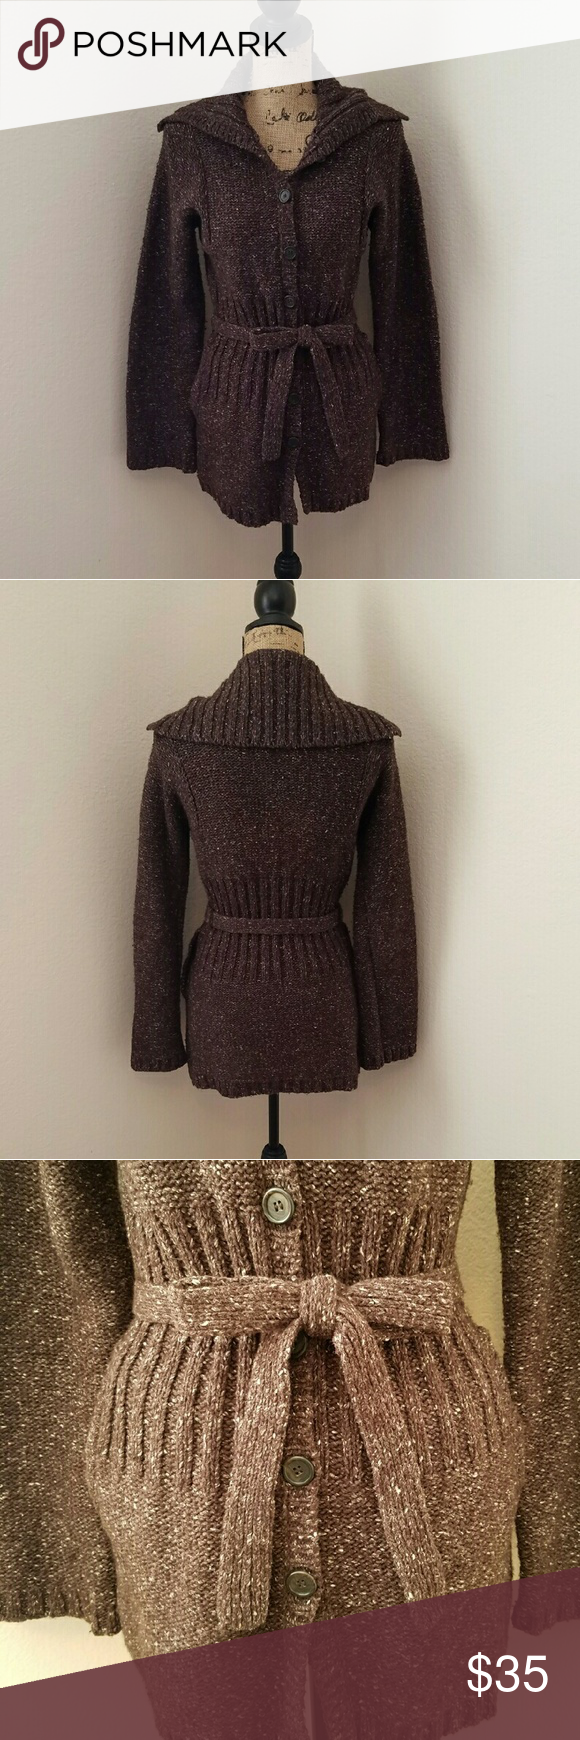 J. Crew Long Belted Cardigan Sweater! Chocolate brown sweater with ...